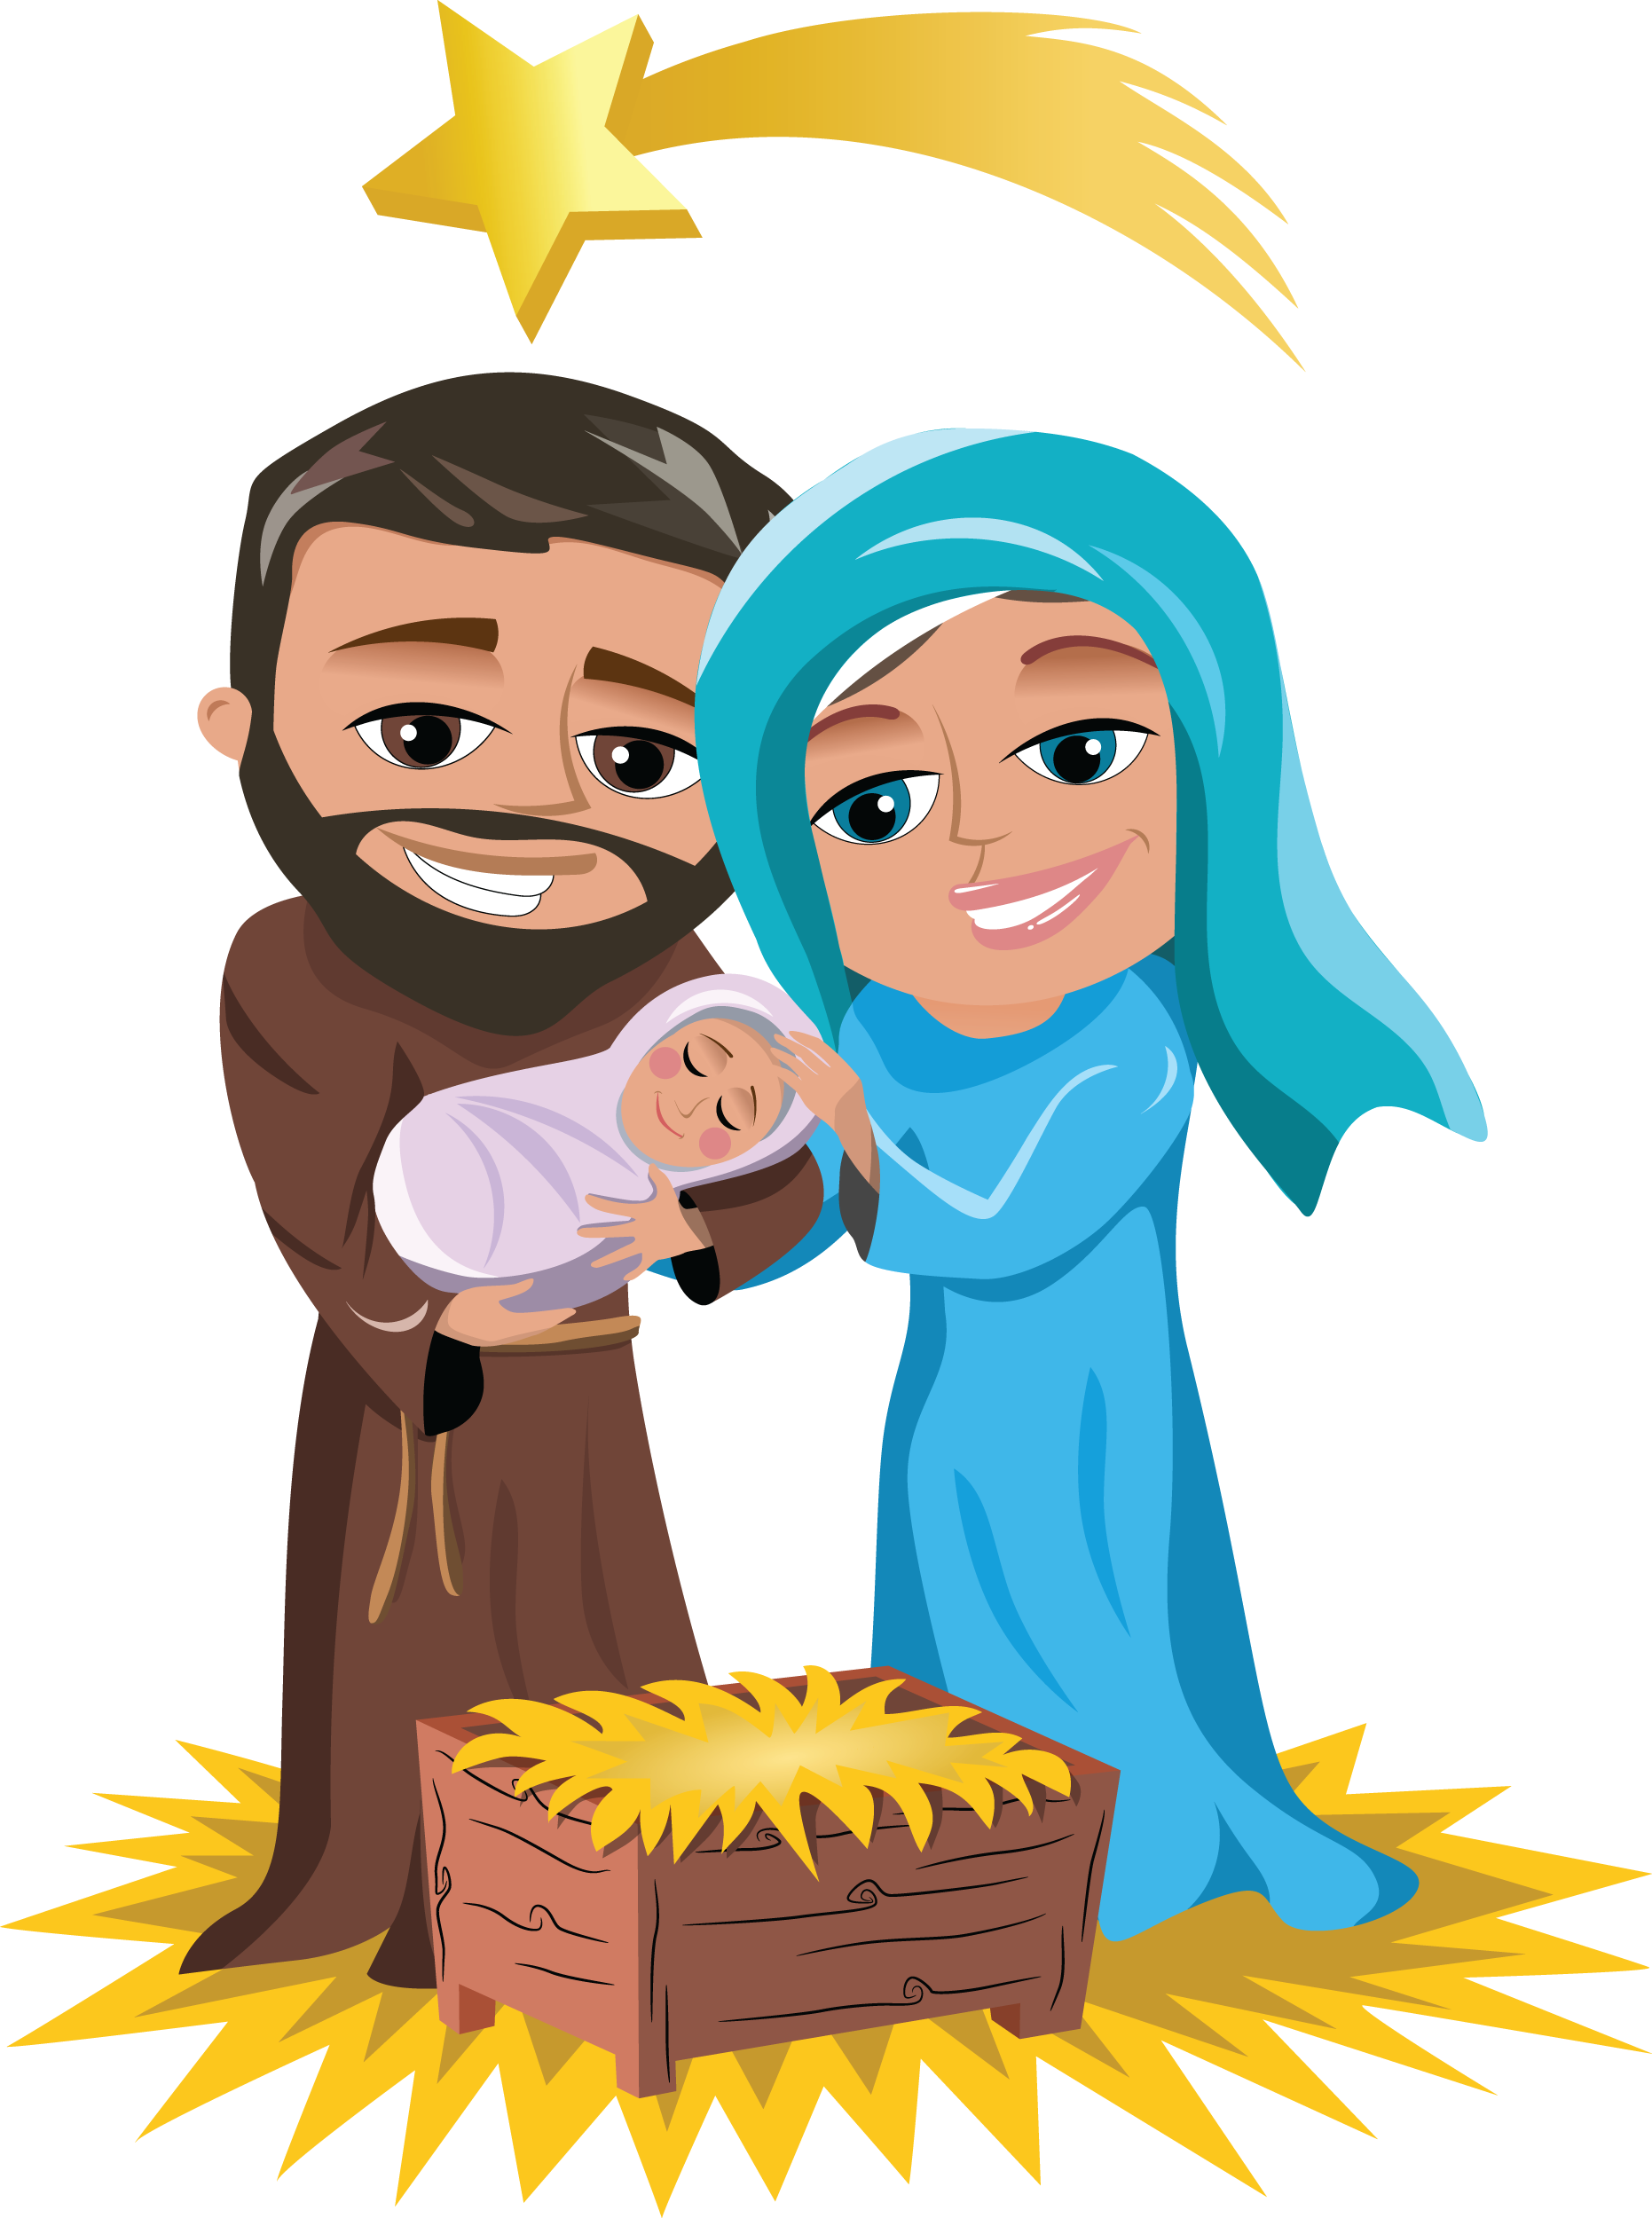 Mary joseph and baby jesus clipart vector royalty free download Mary joseph and baby jesus clip art clipart images gallery for free ... vector royalty free download